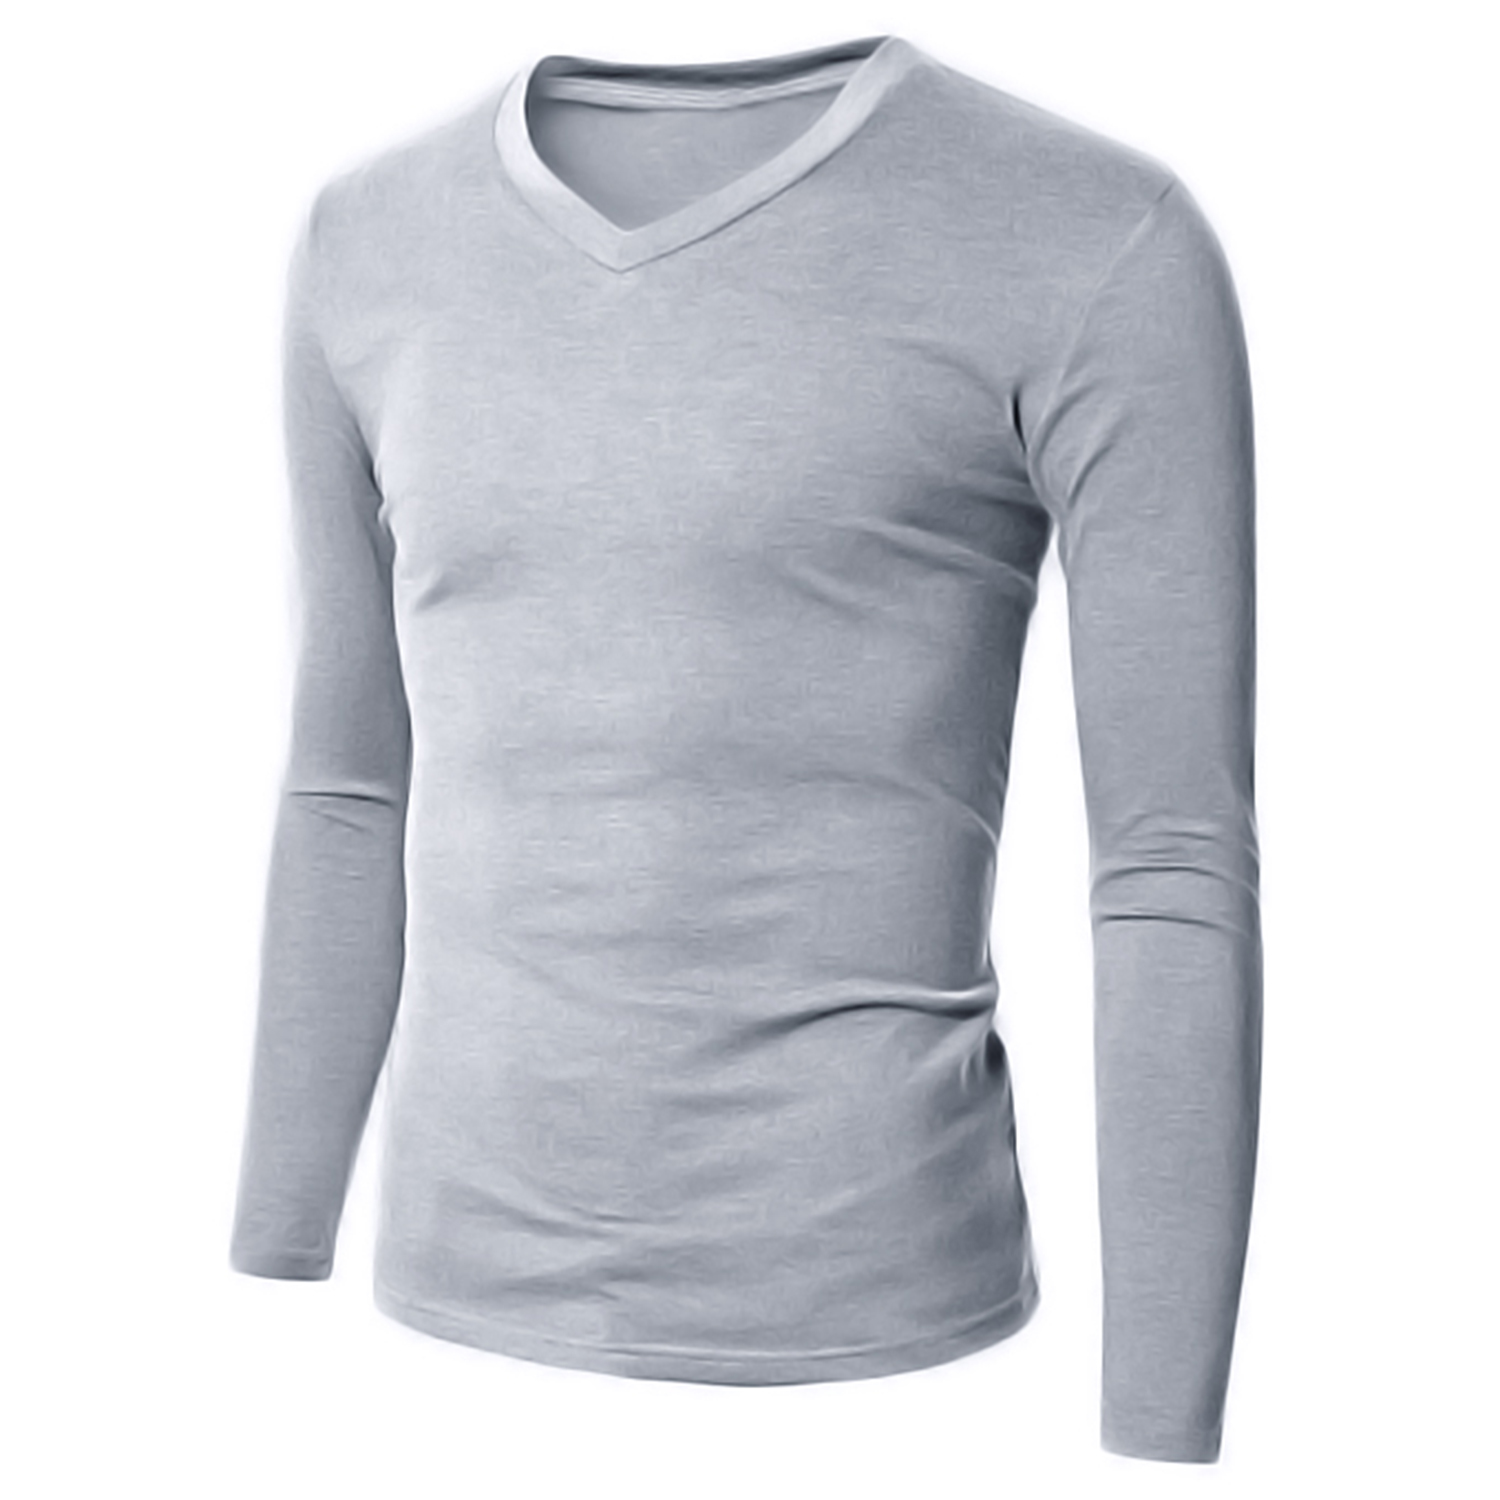 Mens Basics Tops V-Neck Casual Slim Fitted T-shirt Long Sleeve Stretch Blouses